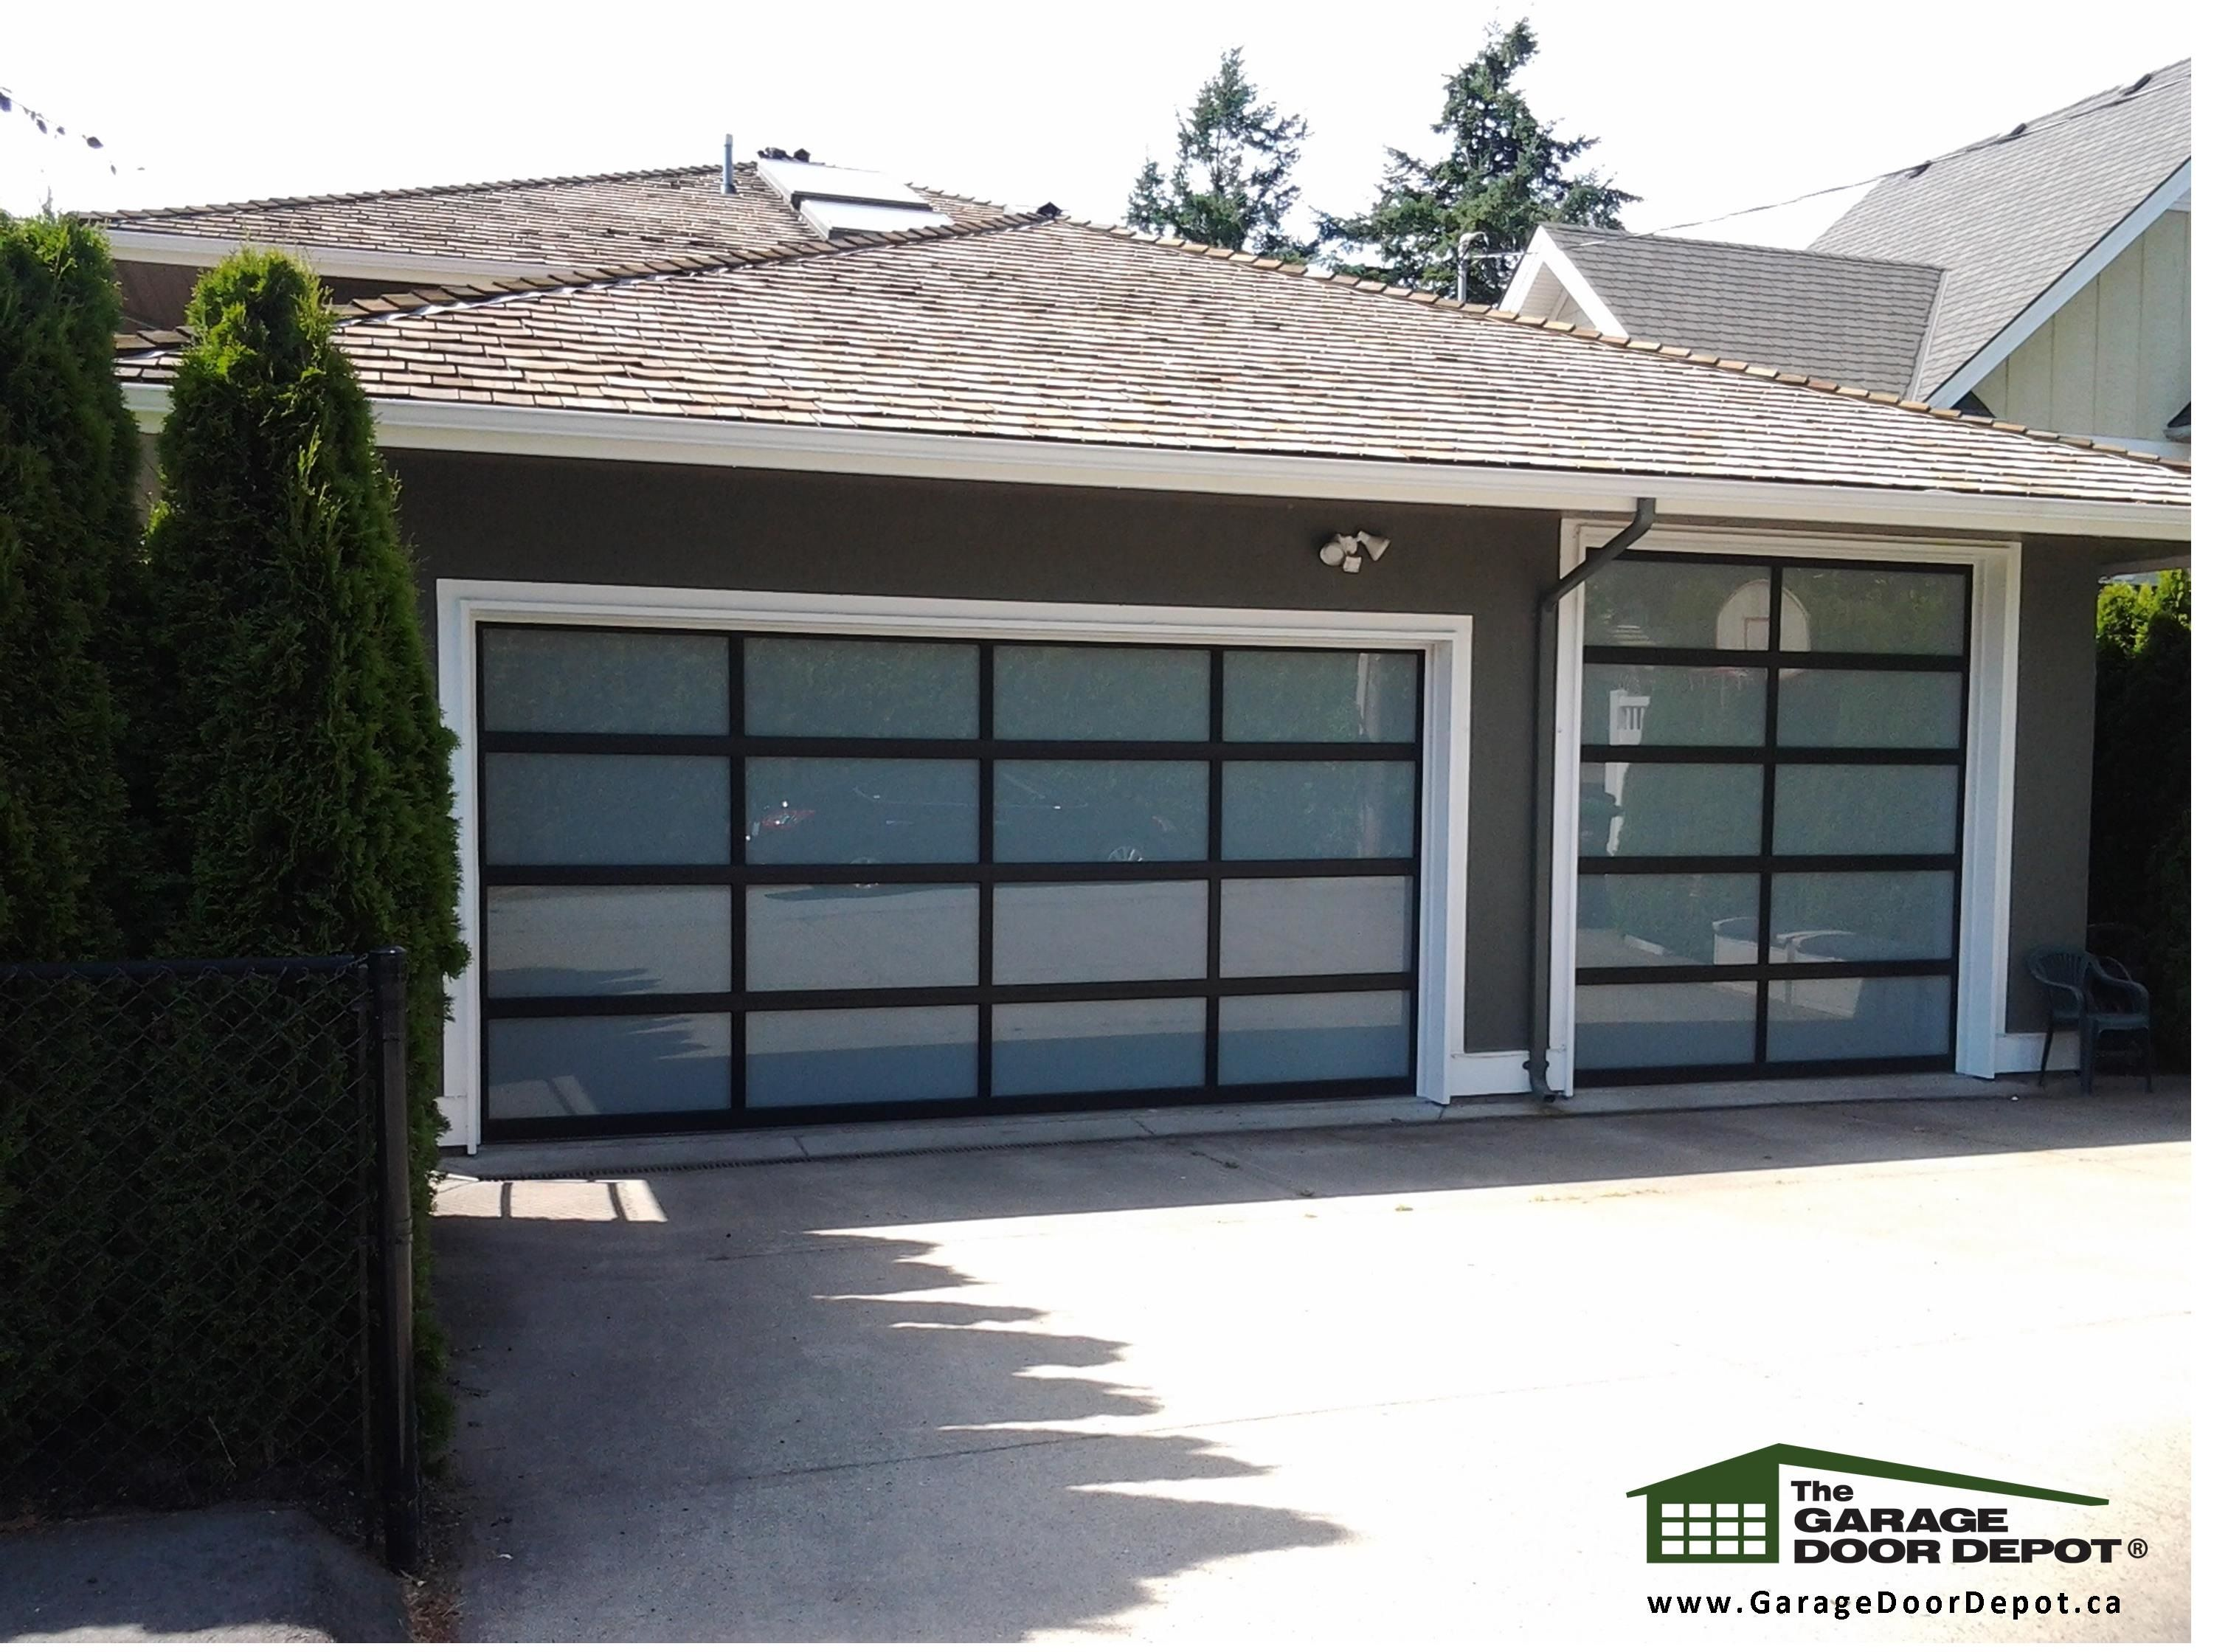 Garage Doors Home Renovations Curb Appeal Full View Steel Glass Aluminum Carriage Traditional Modern Contemporary Shaker S Garage Doors Doors Front Door Design